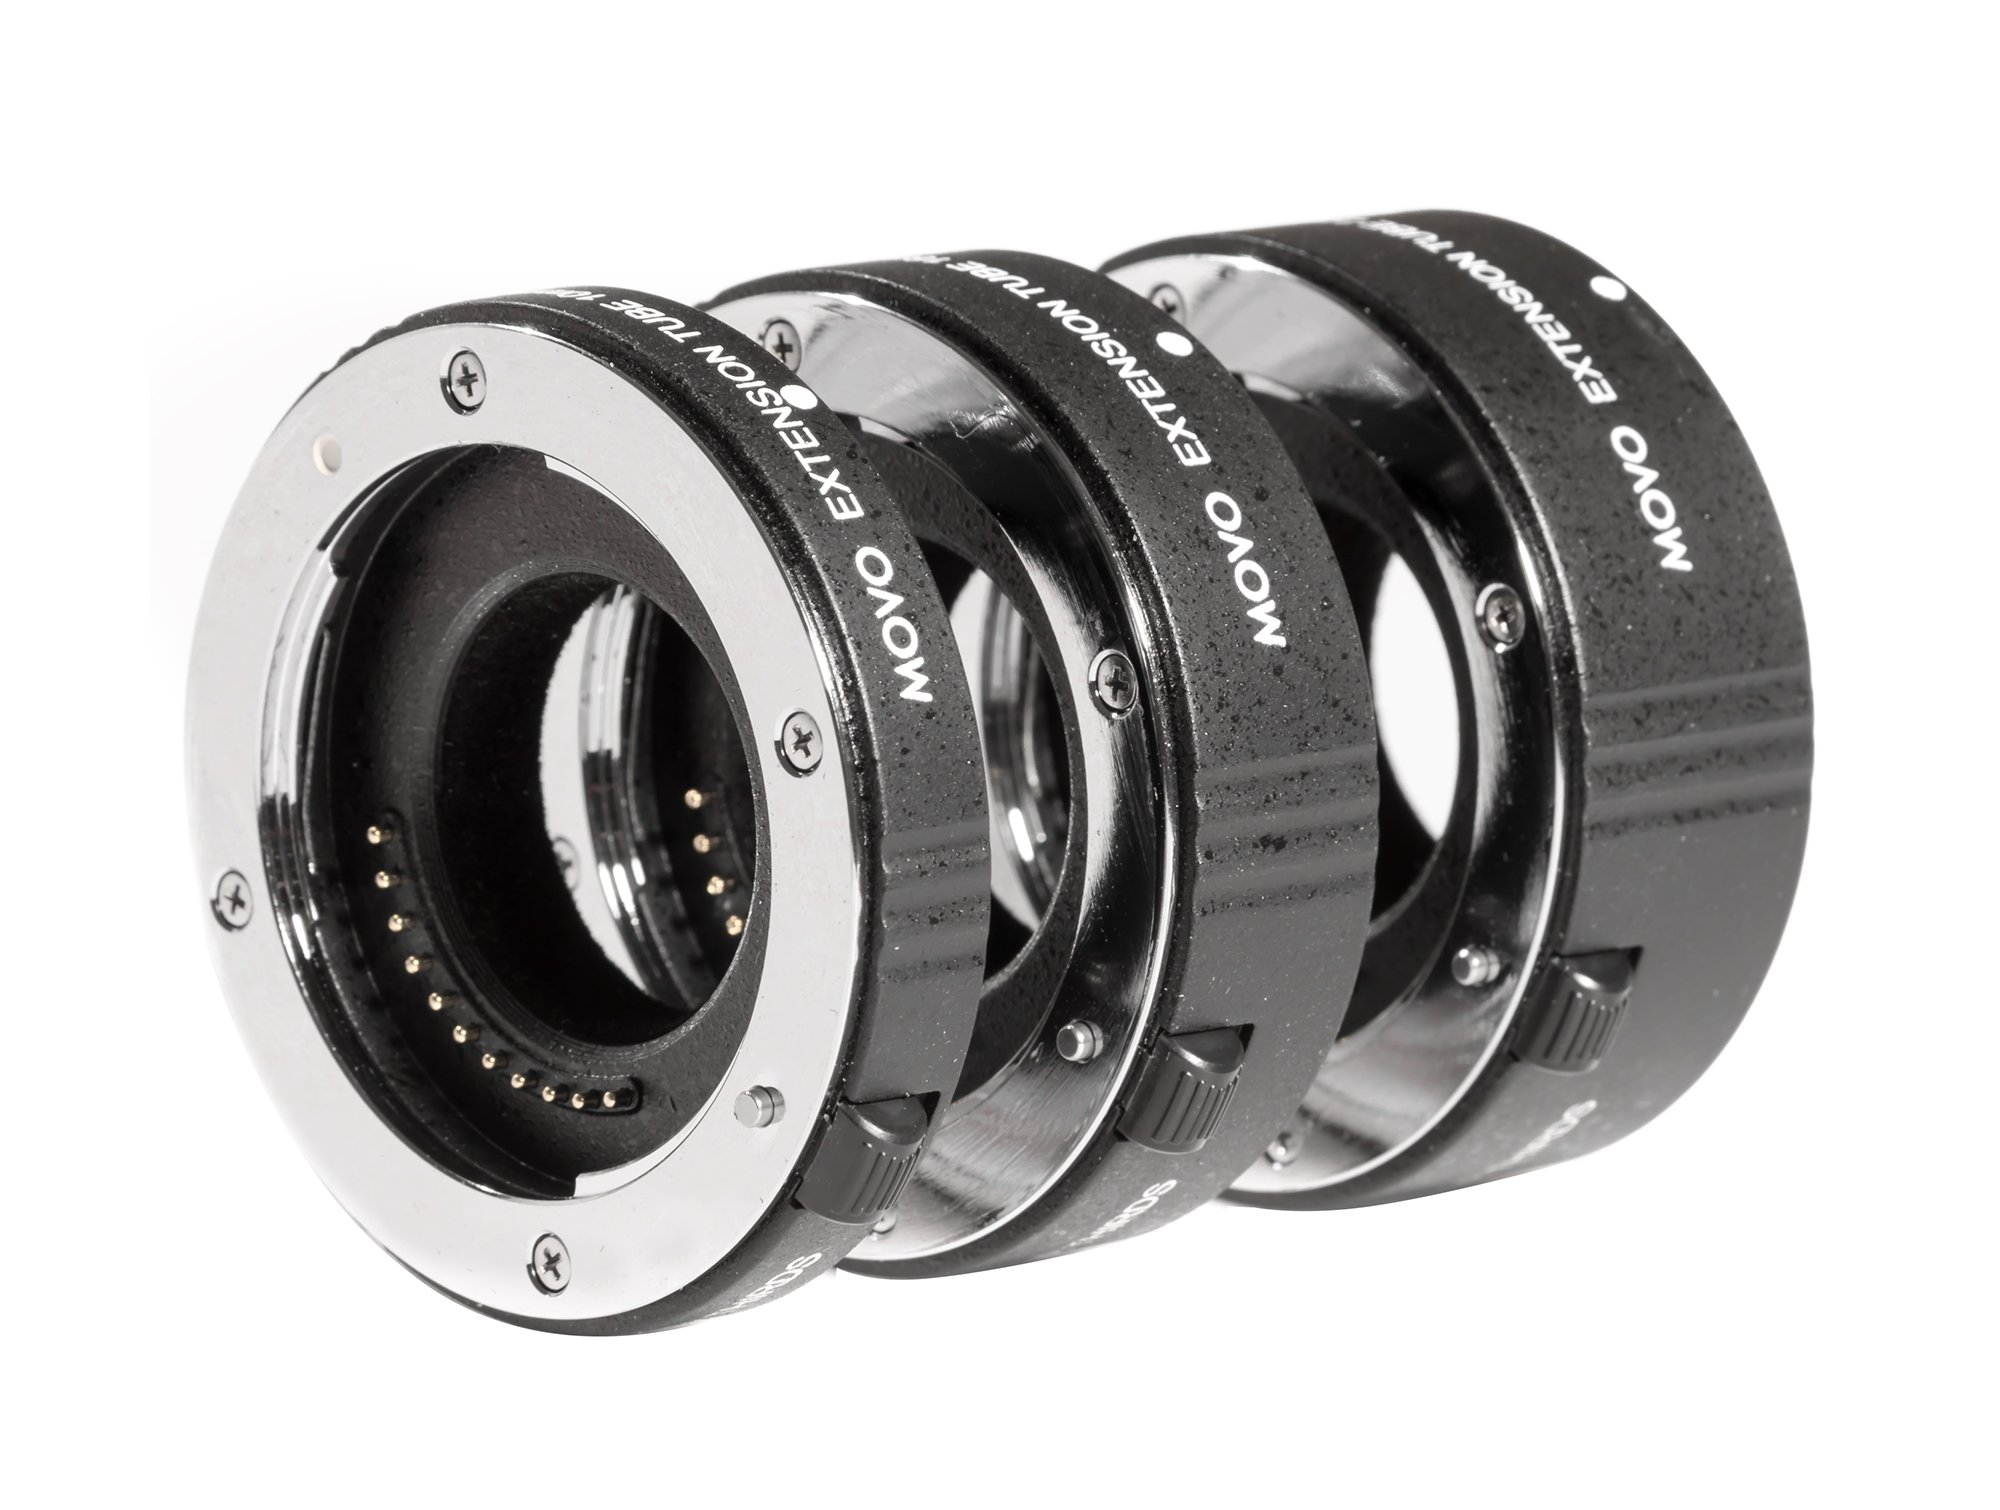 Movo MT-FT47 3-Piece AF Chrome Macro Extension Tube Set for Micro 4:3 Mount Mirrorless Camera System (Compatible with Olympus Pen, Panasonic Lumix, BMCC) with 10mm, 16mm and 21mm Tubes by Movo